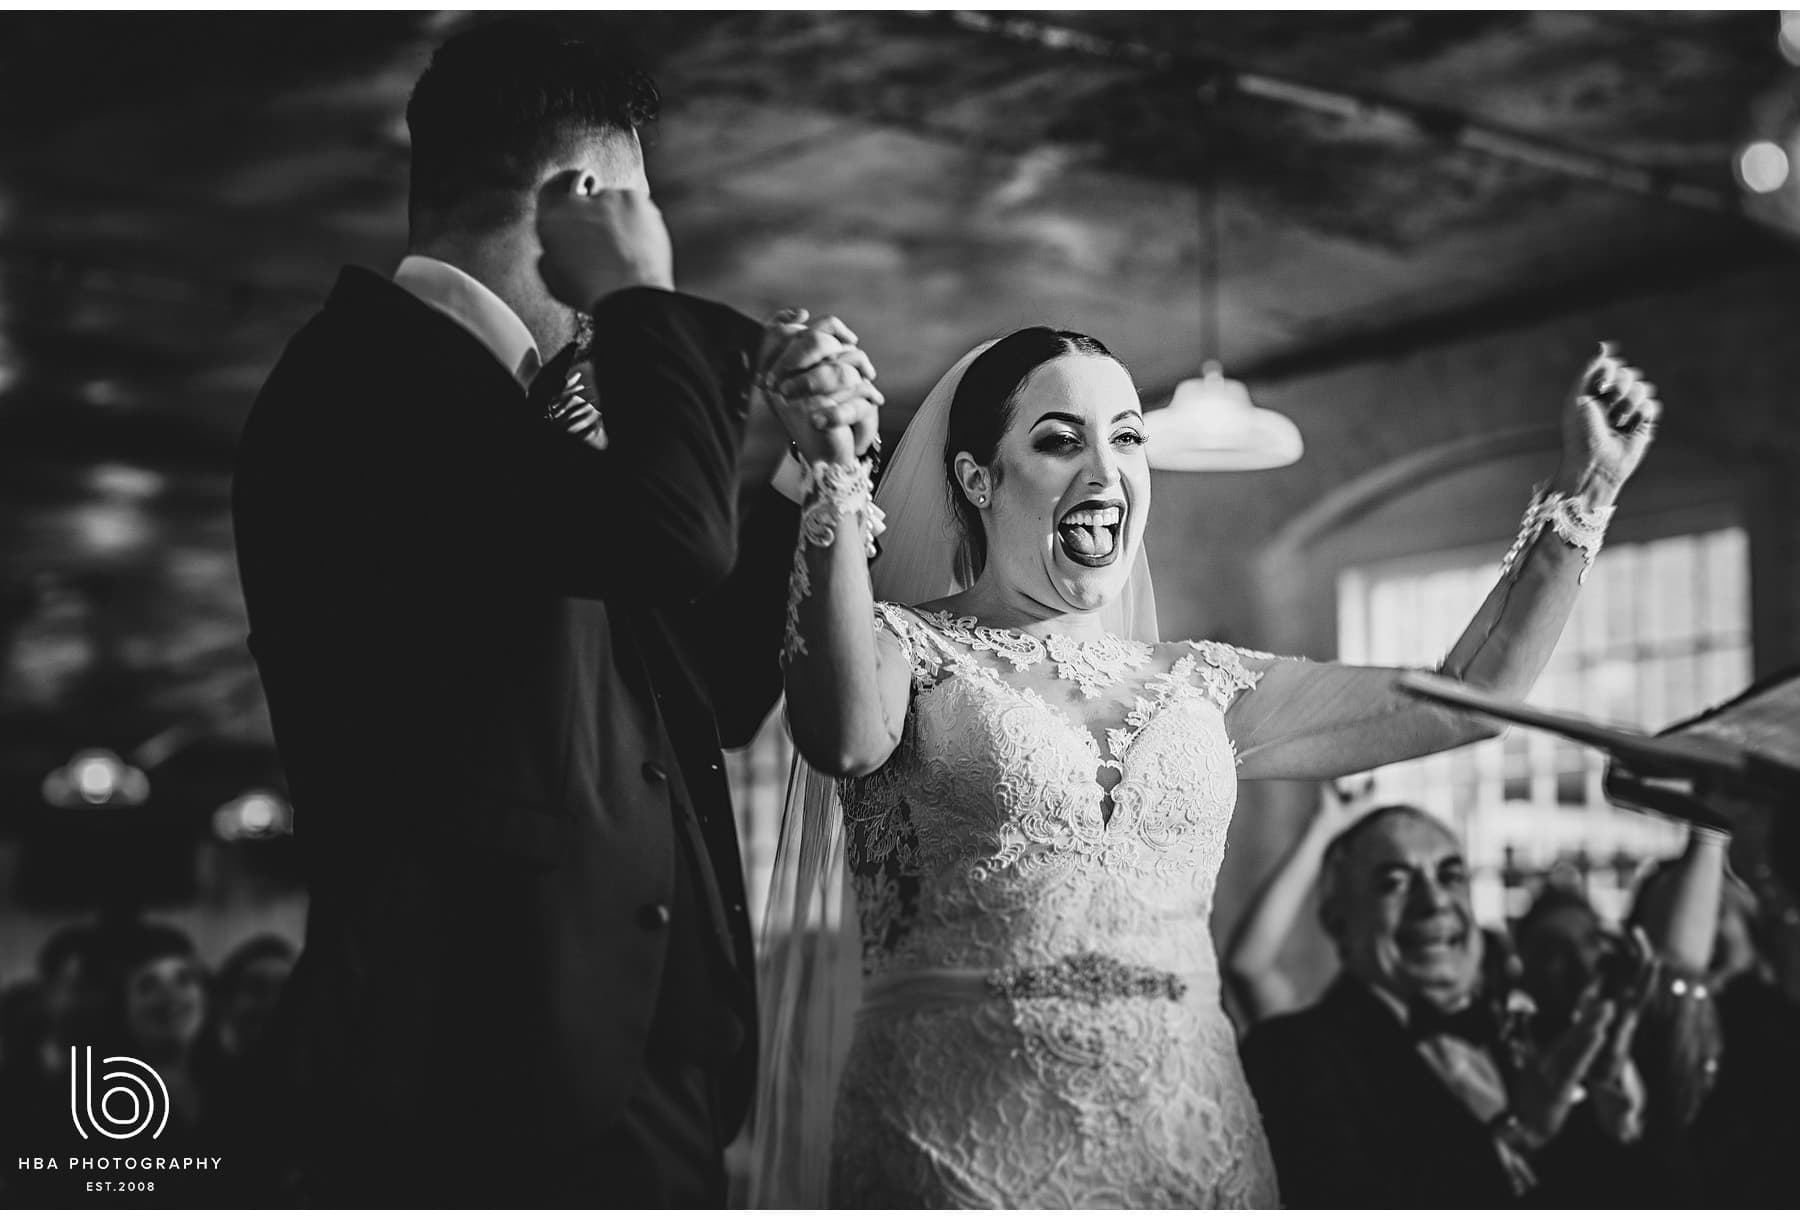 the bride cheering during the ceremony